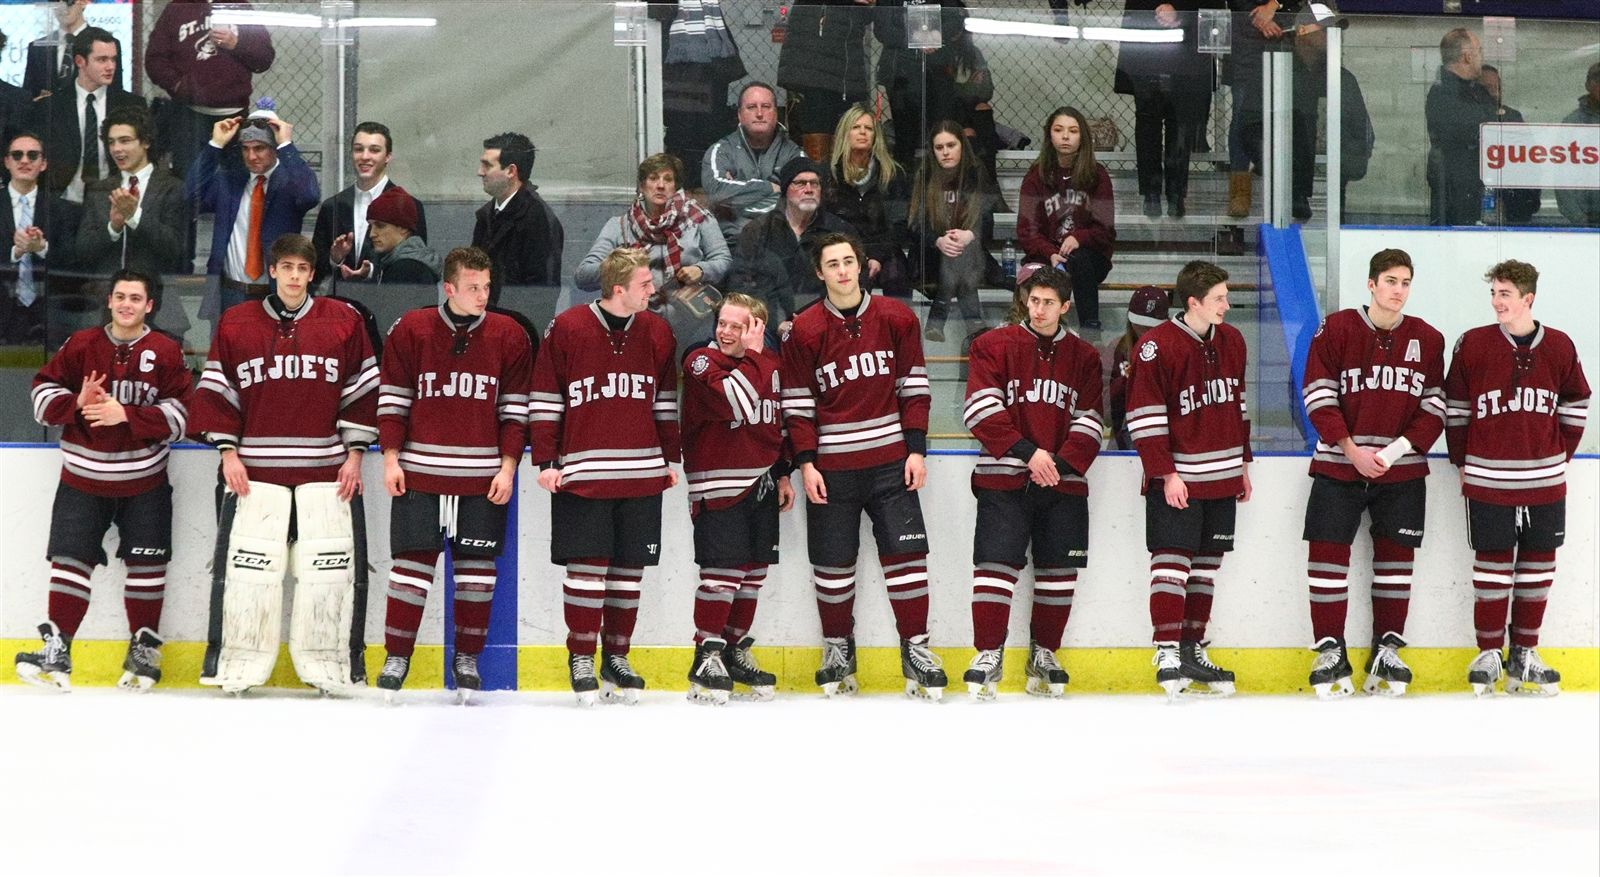 St. Joe's players line up for Senior Night before the start of the St. Joe's vs. Williamsville North game.